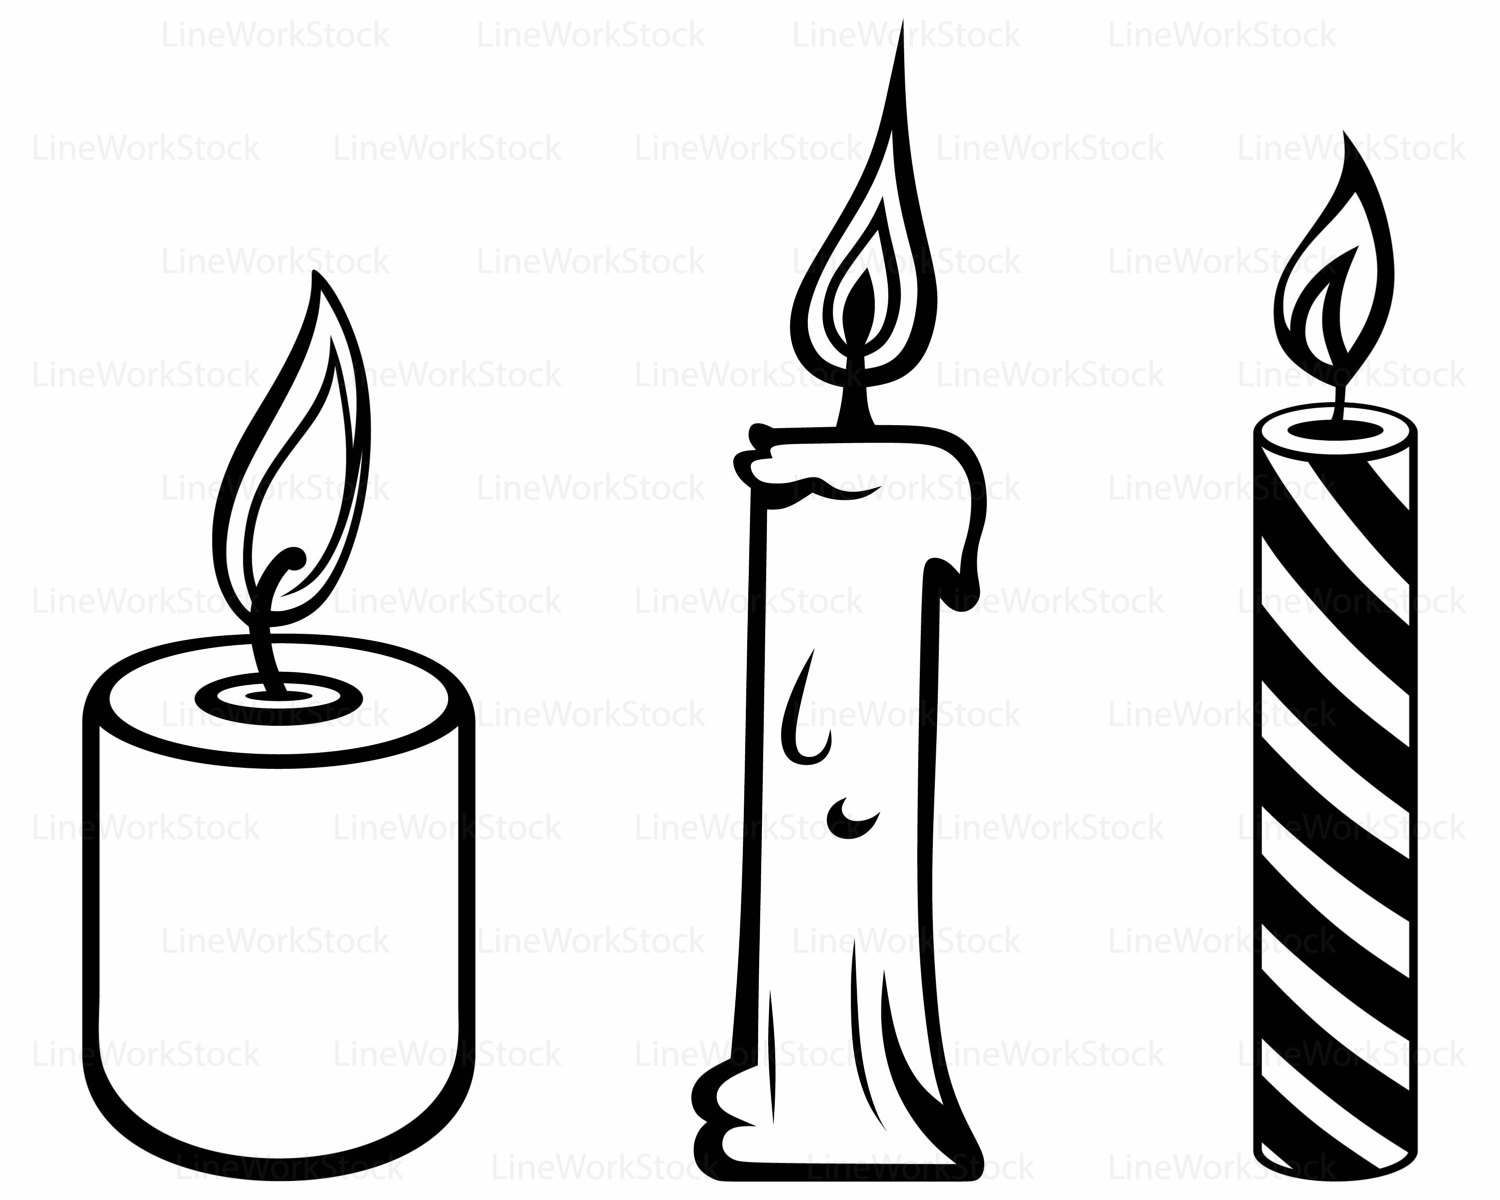 Candle clipart black and white, Picture #322269 candle.